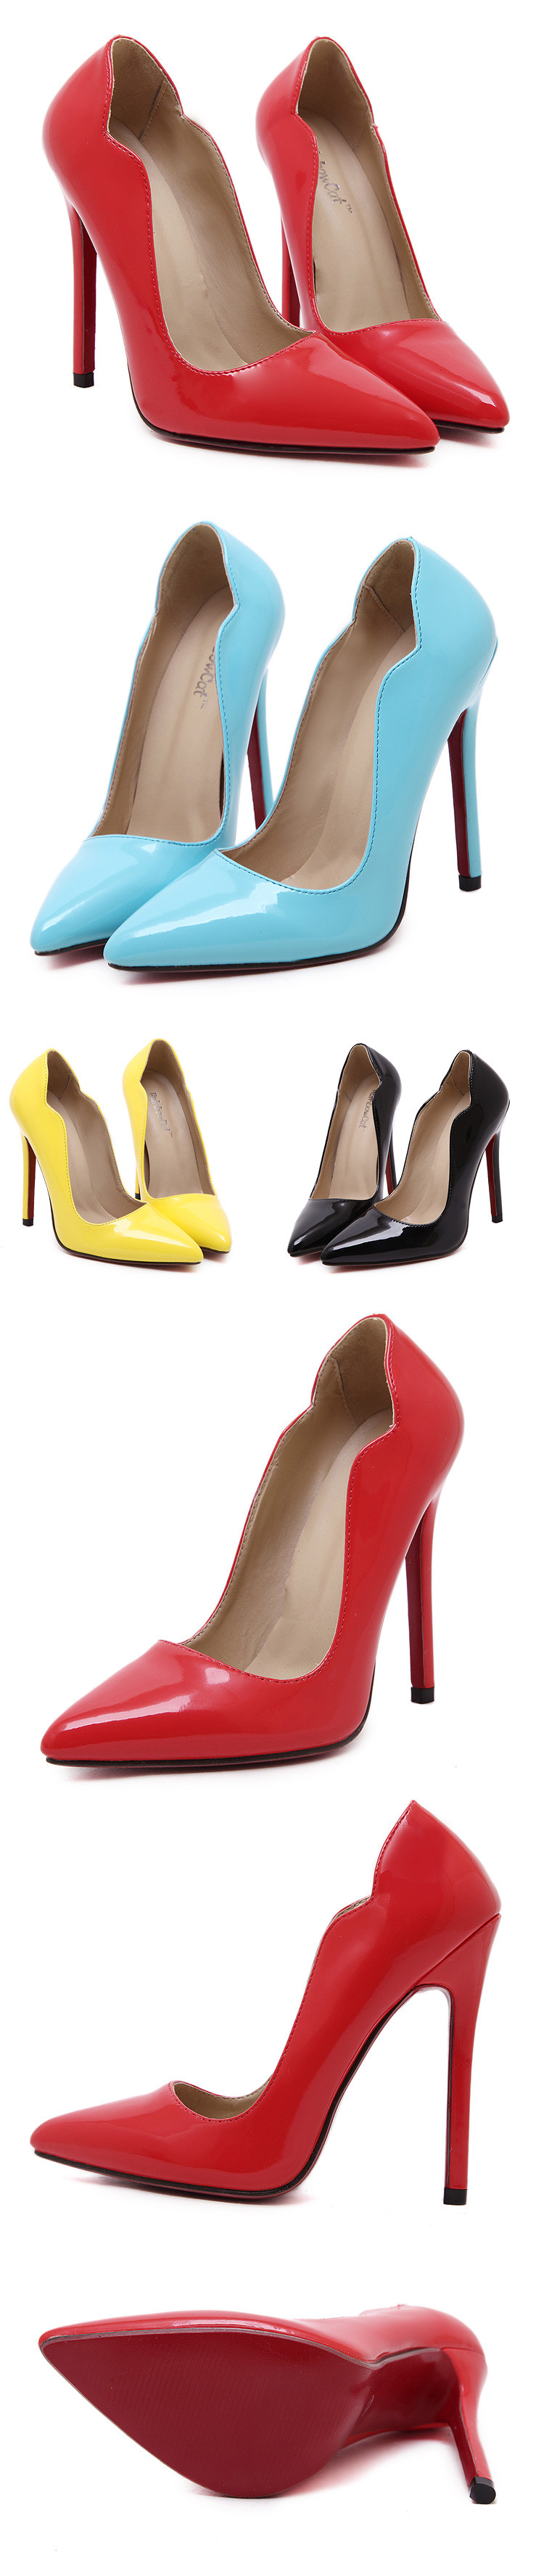 2016 Women's Sexy Red Bottom Pointed Toe High Heels fashion candy colors Patent Leather pumps Free shipping